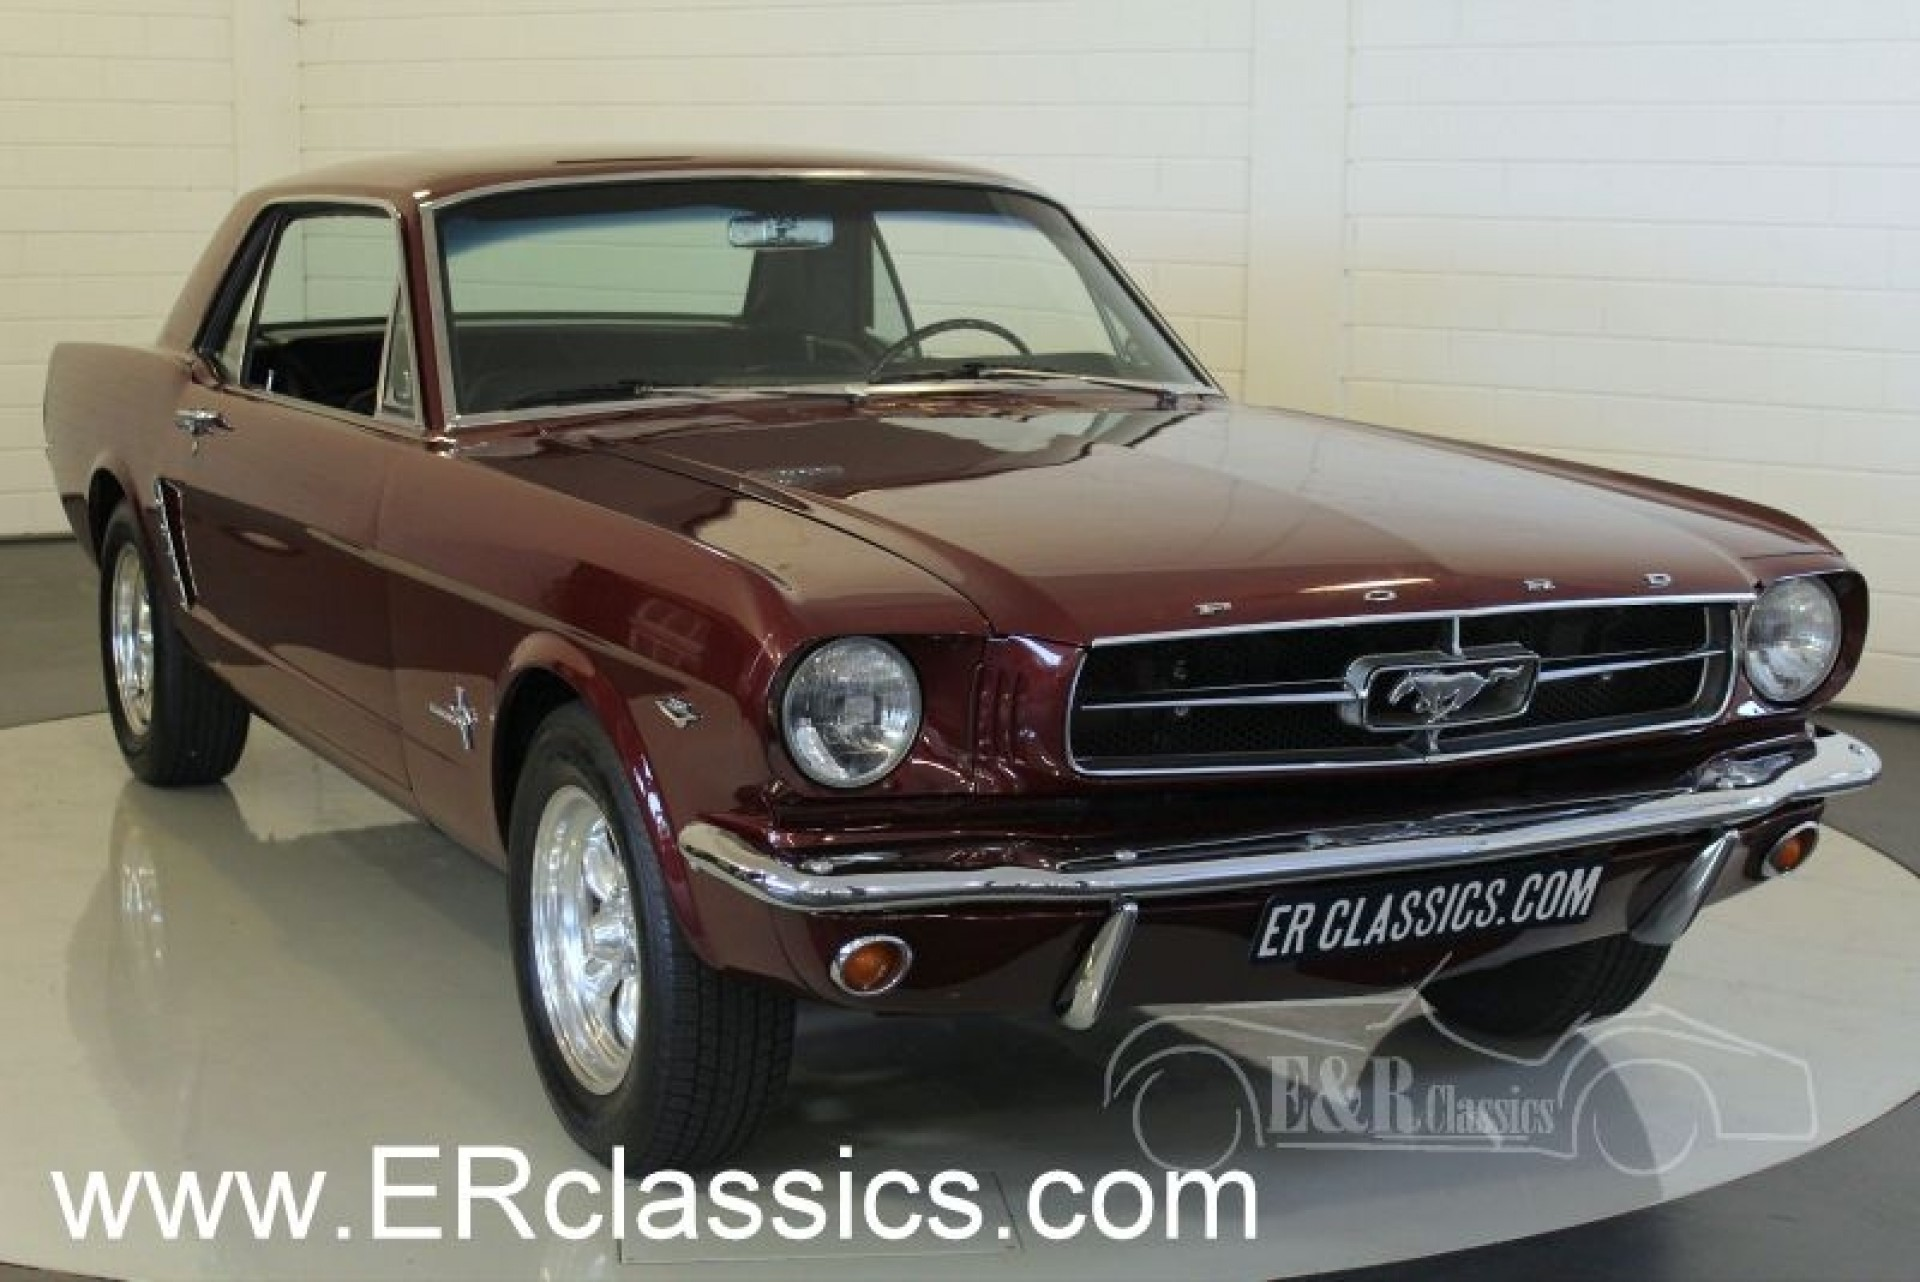 Ford mustang coupe 1965 alle fotos ansehen